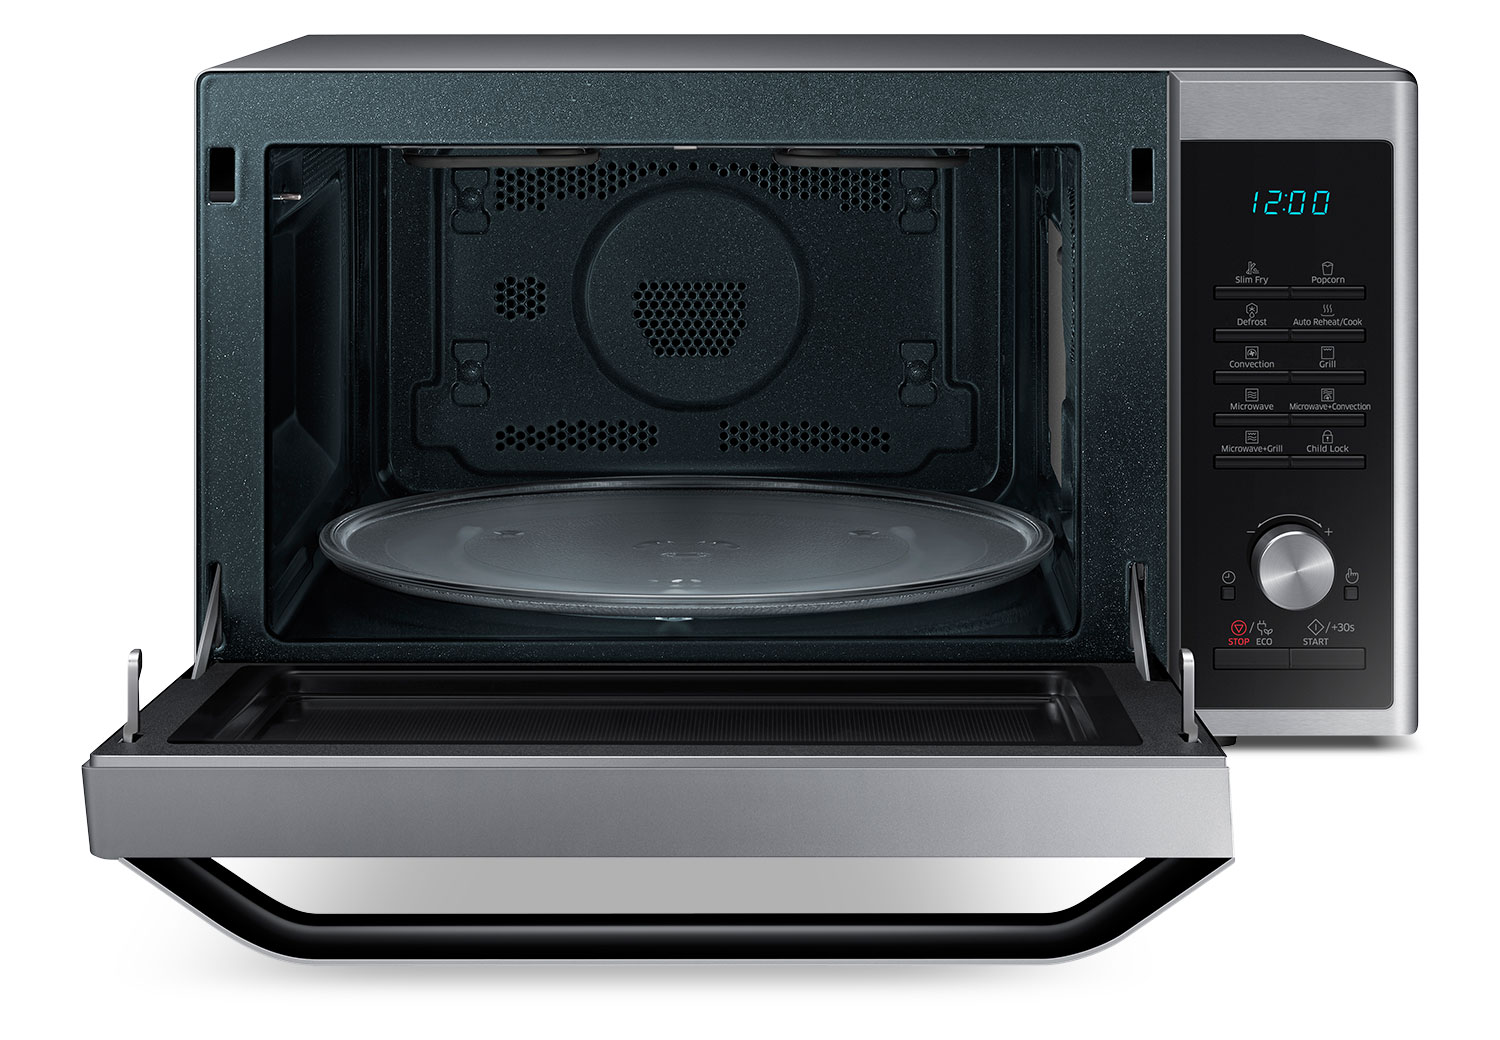 Samsung Stainless Steel Countertop Convection Microwave (1.1 Cu. Ft ...